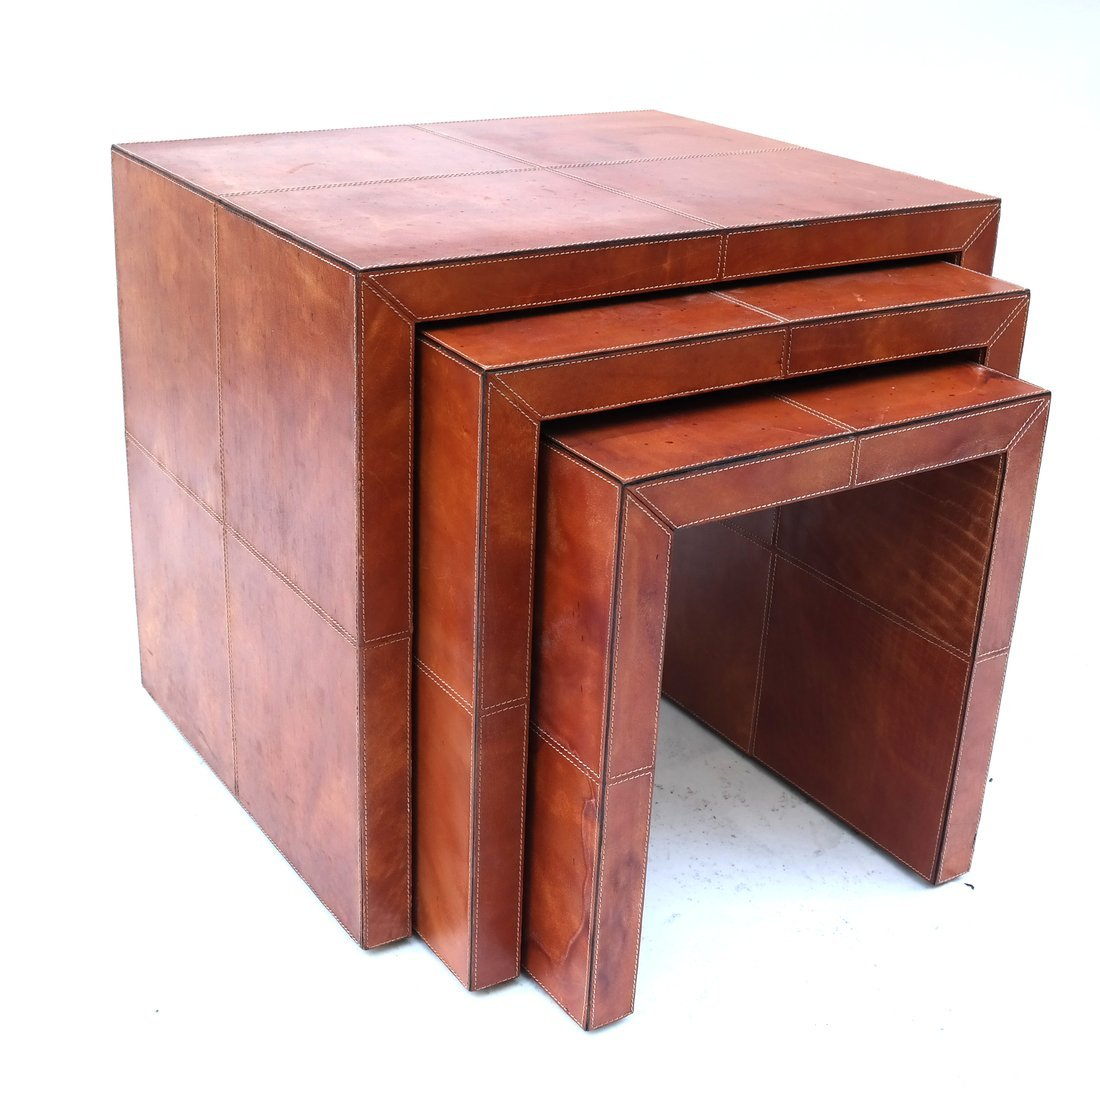 Nest of Three Leather Tables